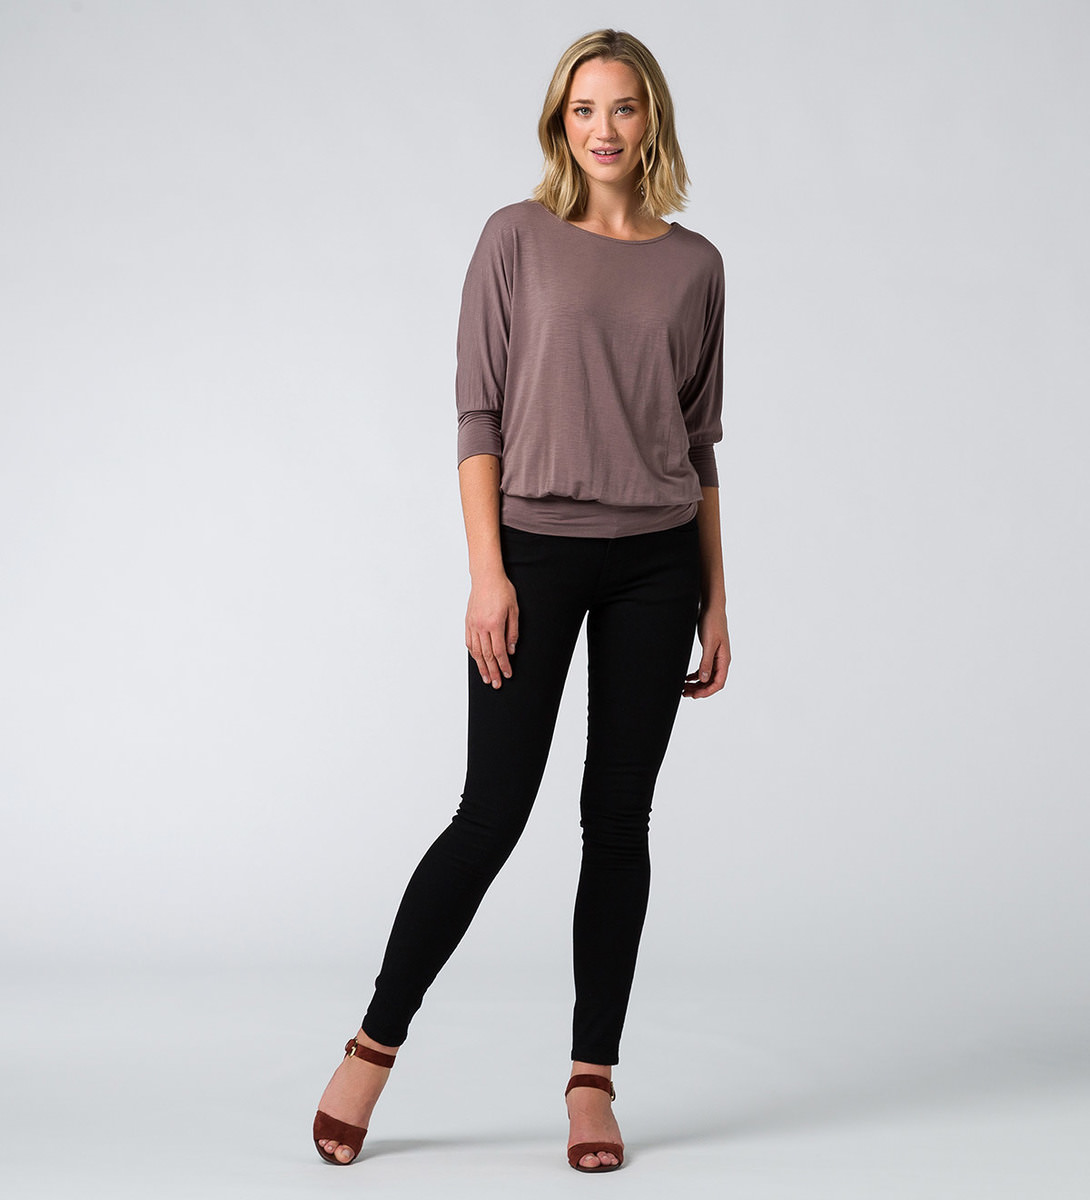 T-Shirt Nele in taupe